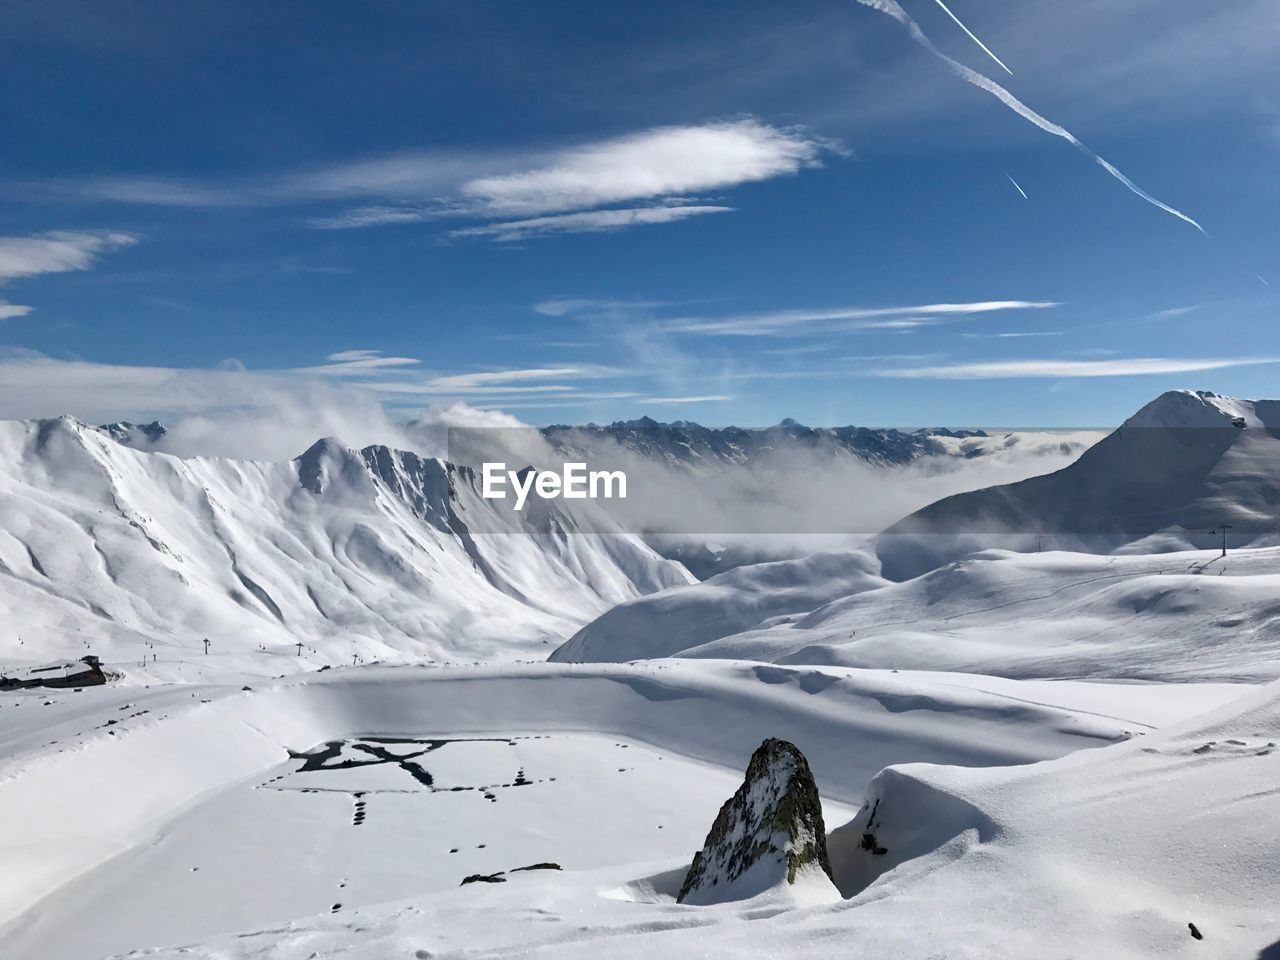 snow, winter, cold temperature, beauty in nature, cloud - sky, scenics - nature, sky, non-urban scene, mountain, tranquility, tranquil scene, environment, white color, landscape, nature, snowcapped mountain, day, mountain range, no people, outdoors, powder snow